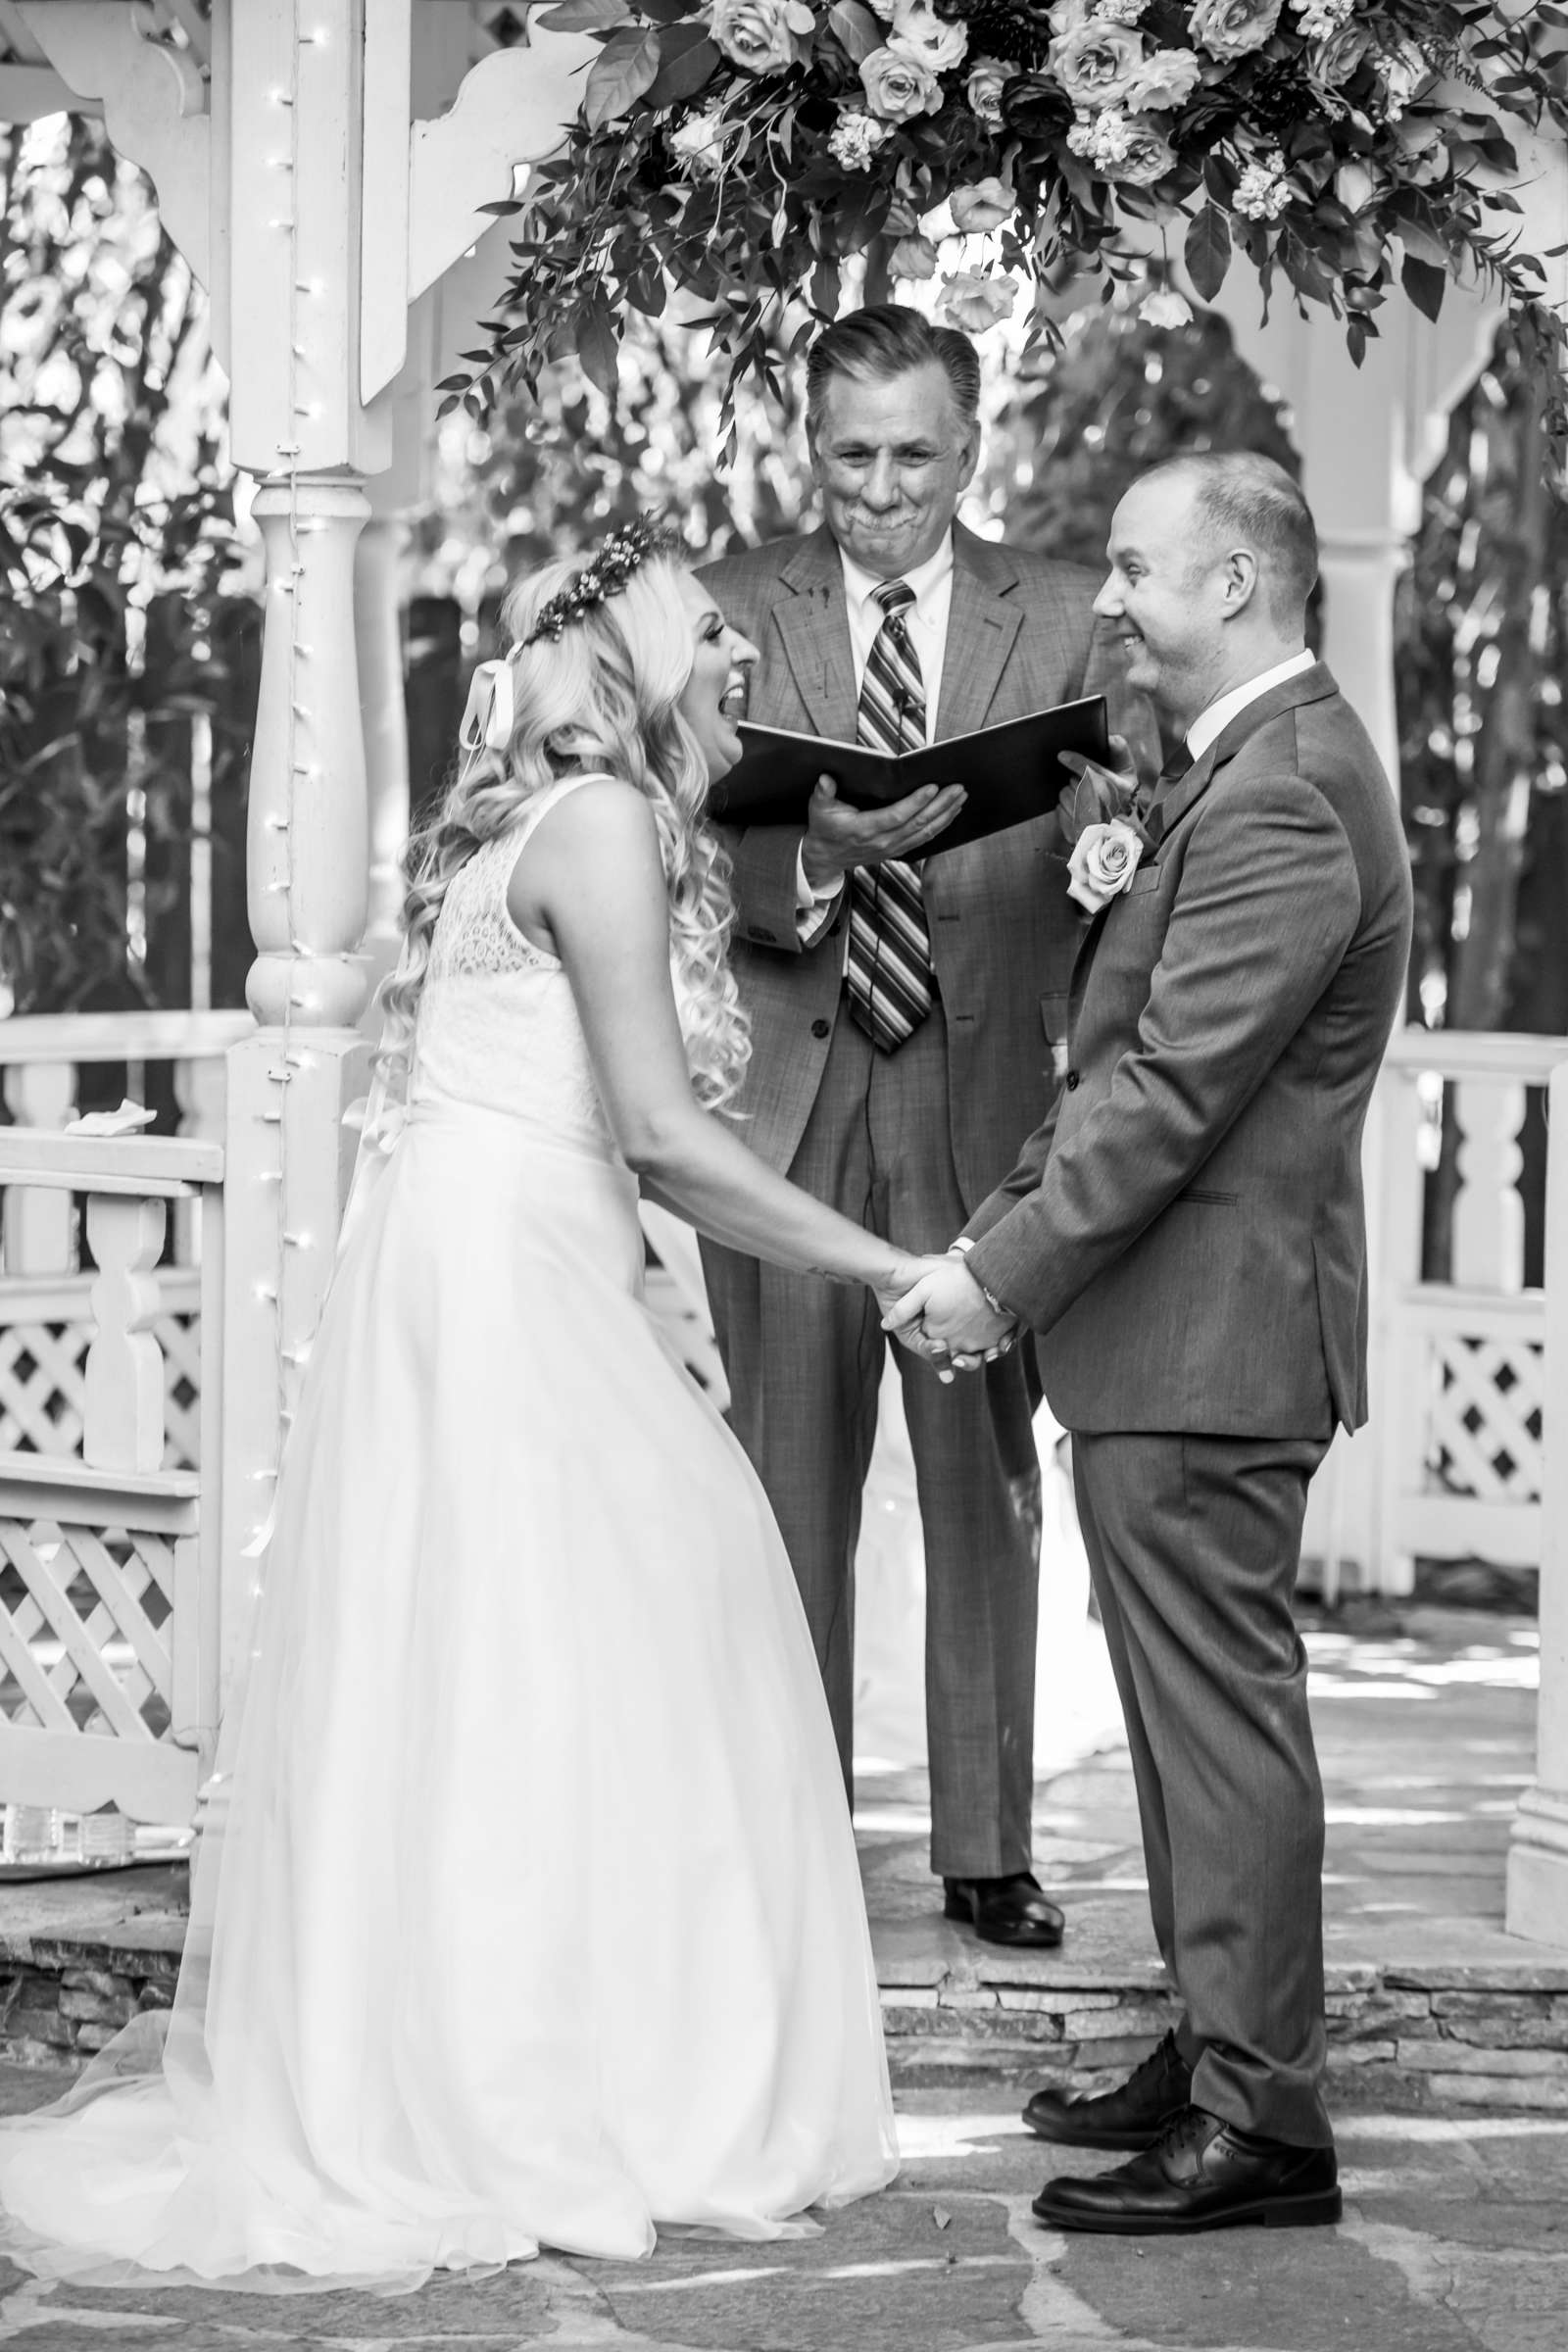 Twin Oaks House & Gardens Wedding Estate Wedding, Brittany and Sean Wedding Photo #88 by True Photography